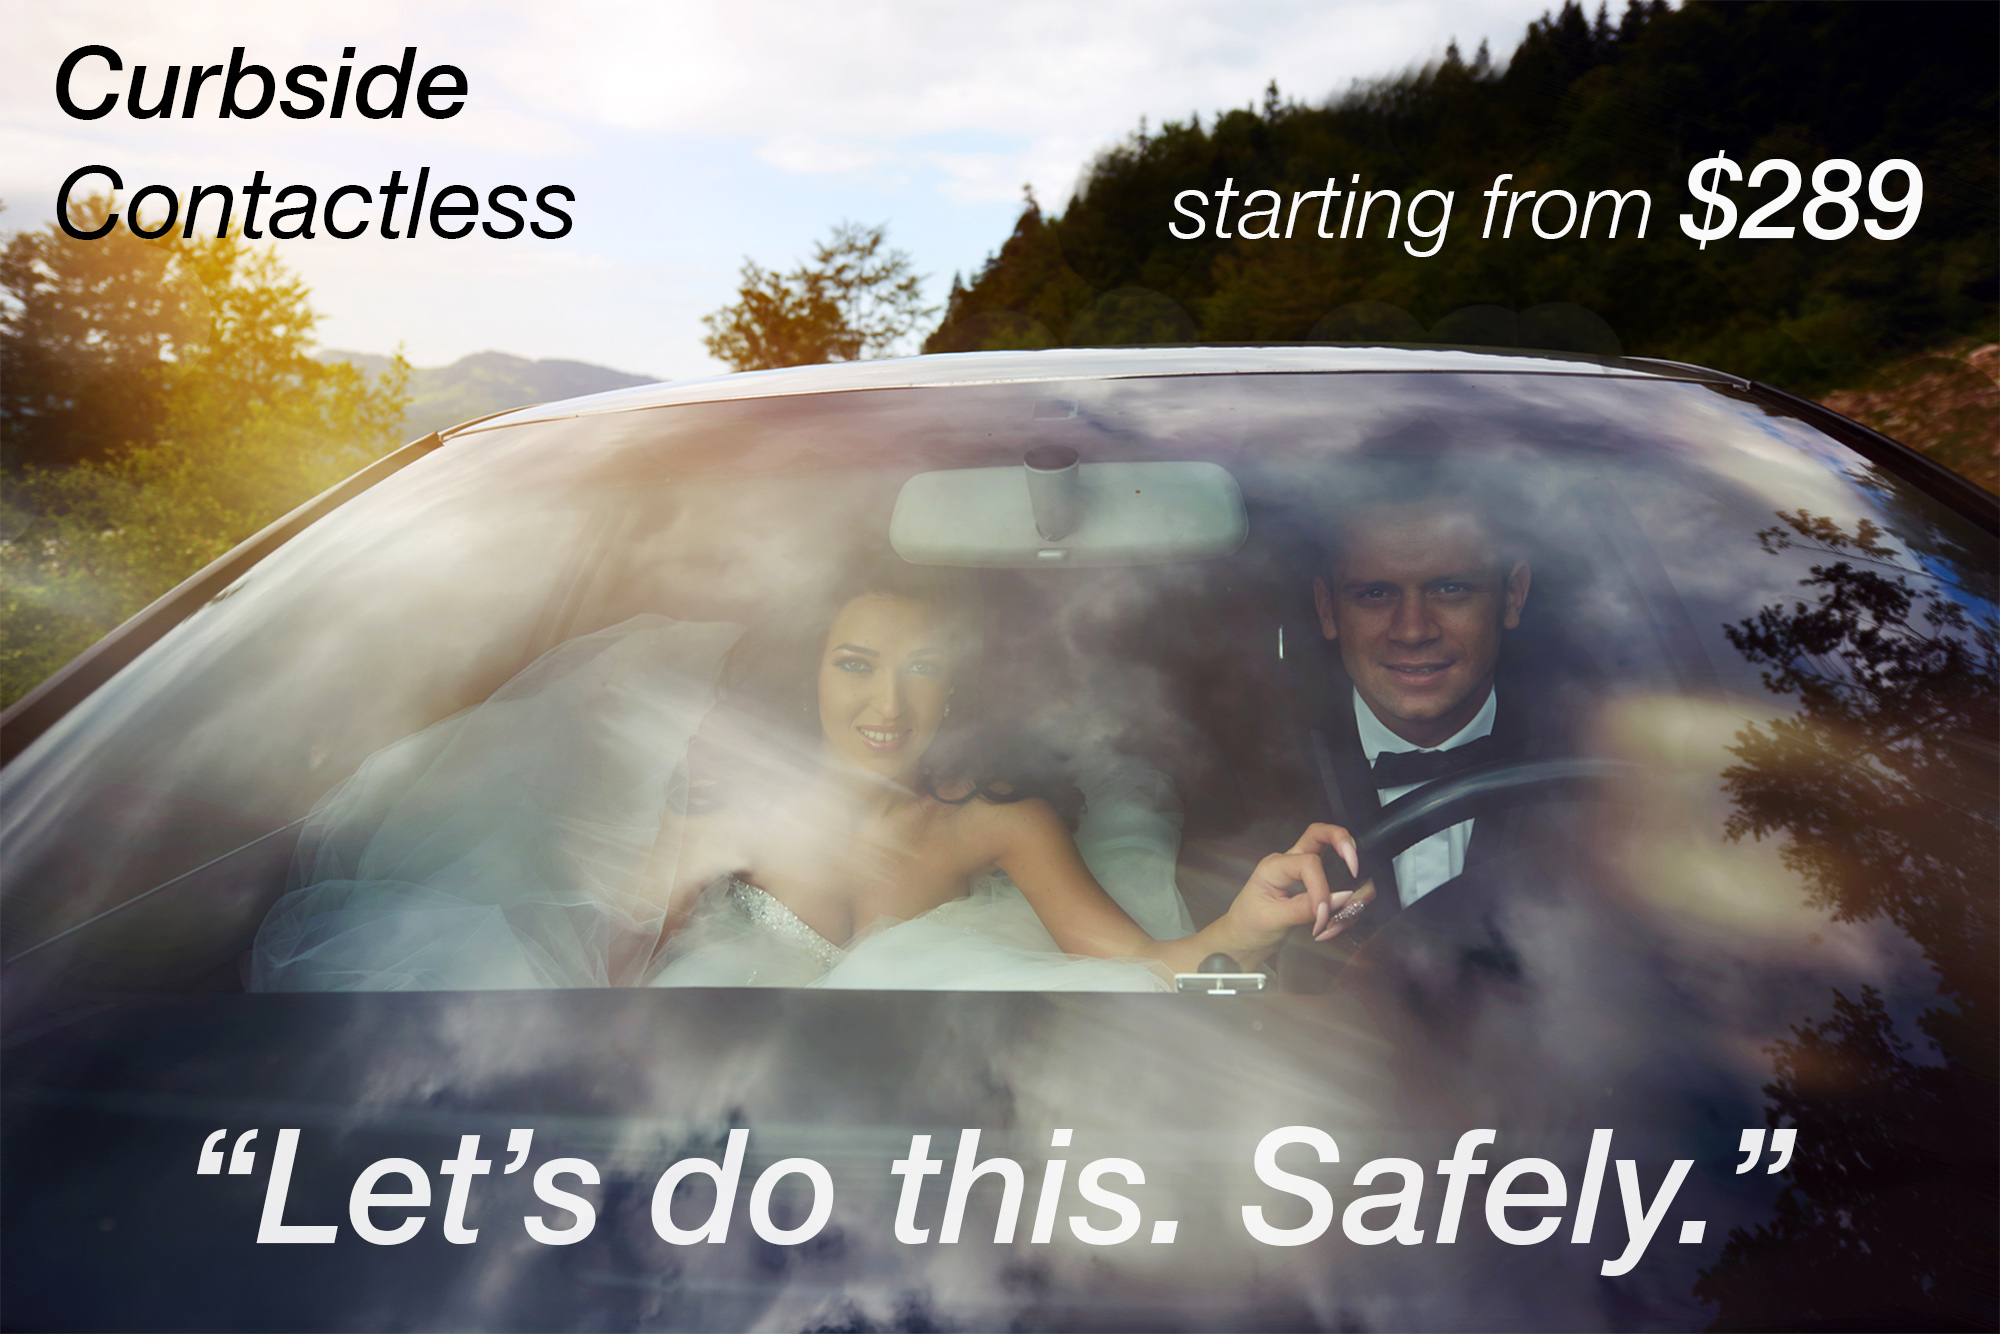 albertson contacless curbside weddings fast